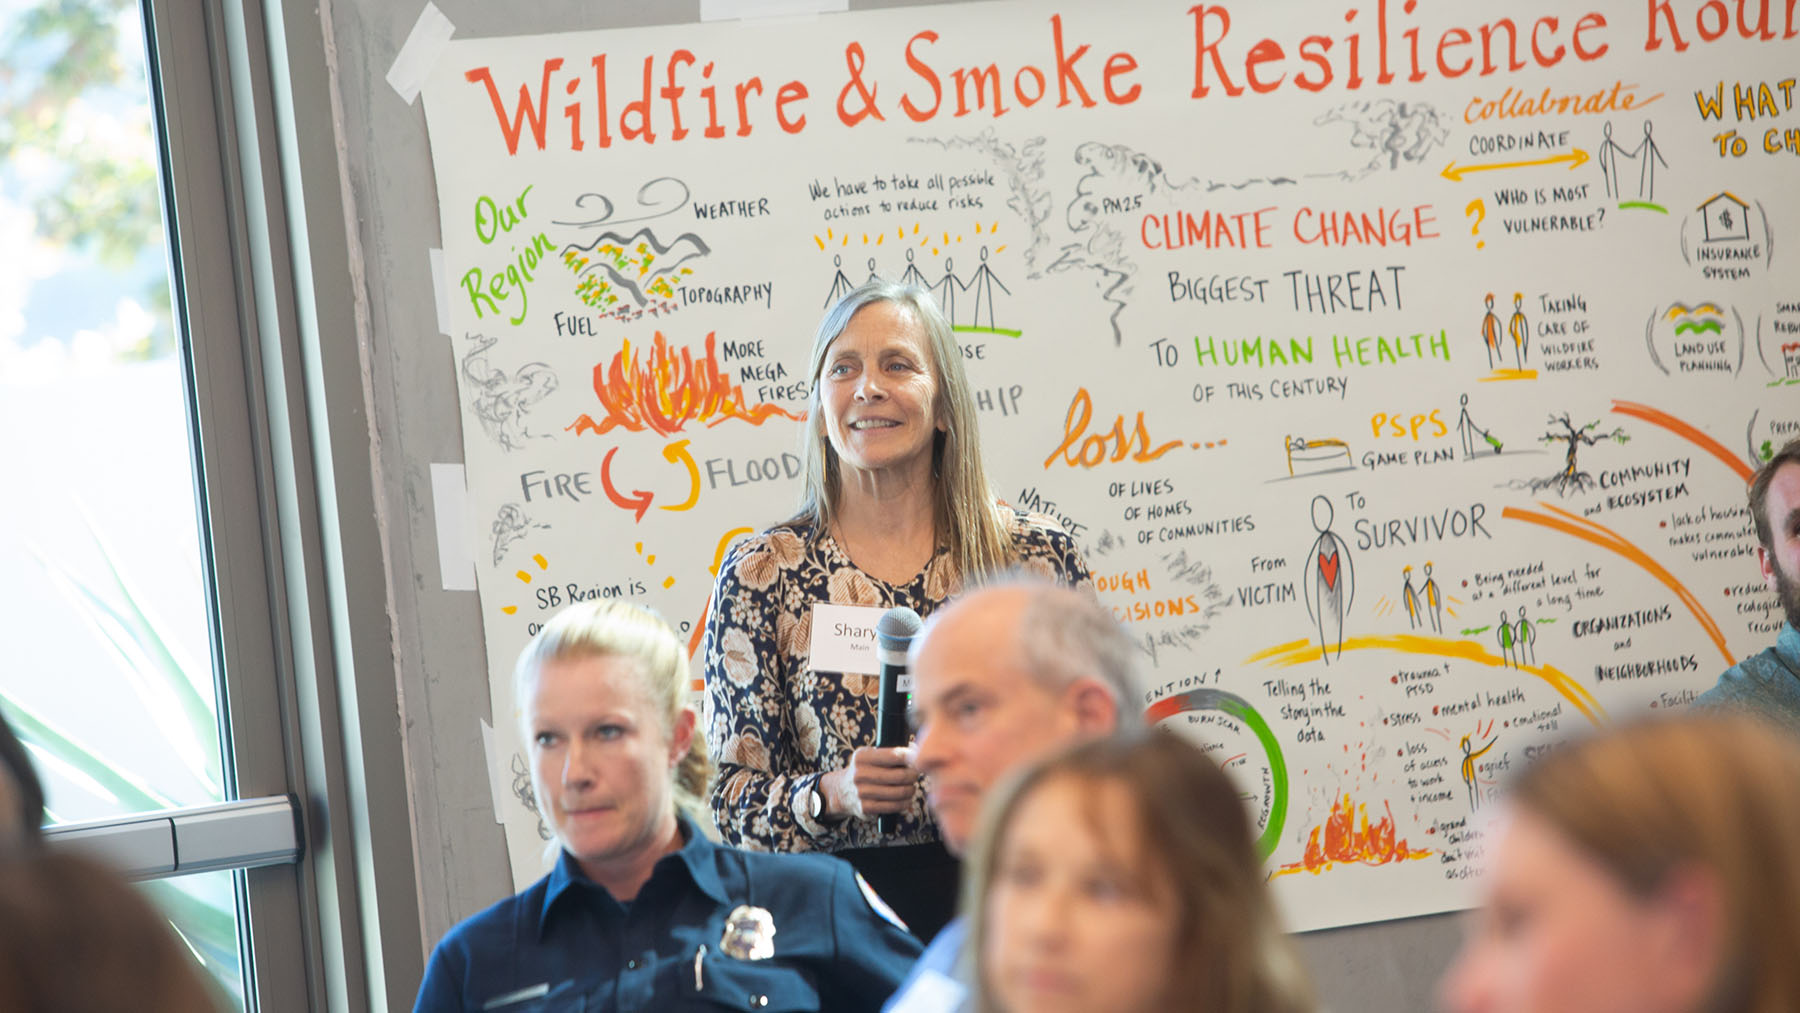 Attendees brainstorm ideas for increasing community resilience against wildfires and smoke. (Sarita Relis/ Community Environmental Council)